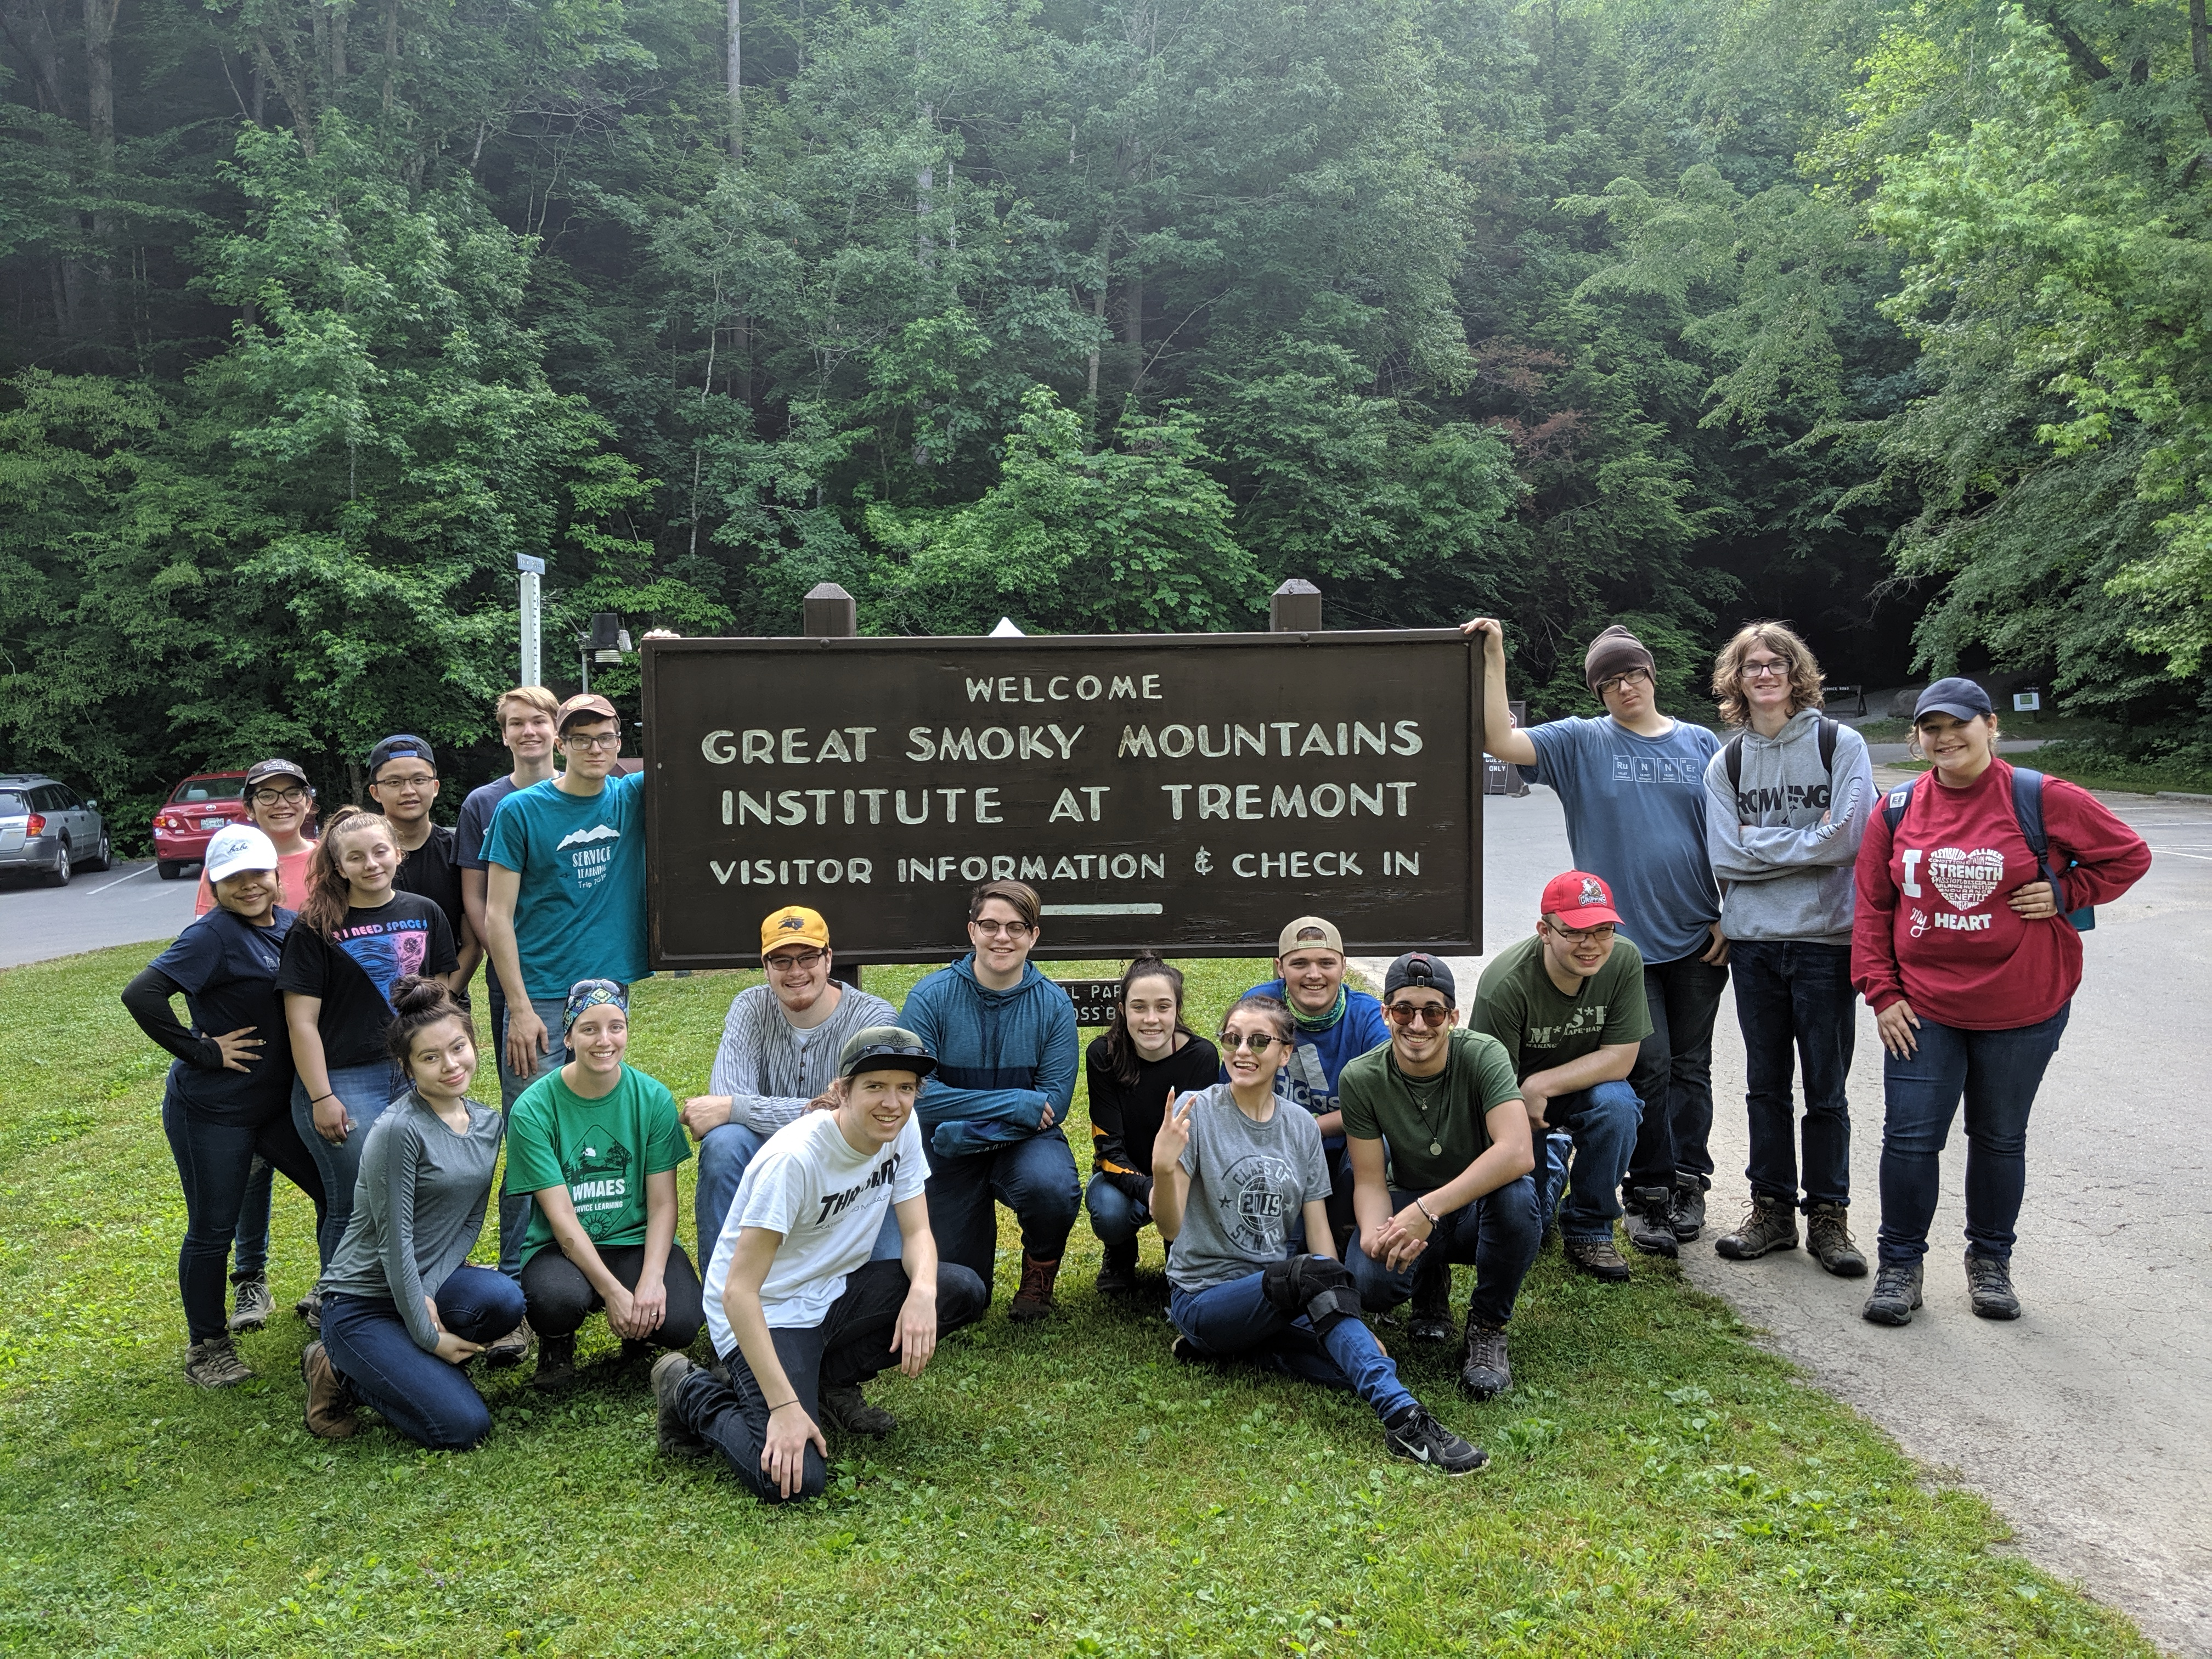 West Michigan Academy of Environmental Science students sit in front of the Great Smoky Mountain sign